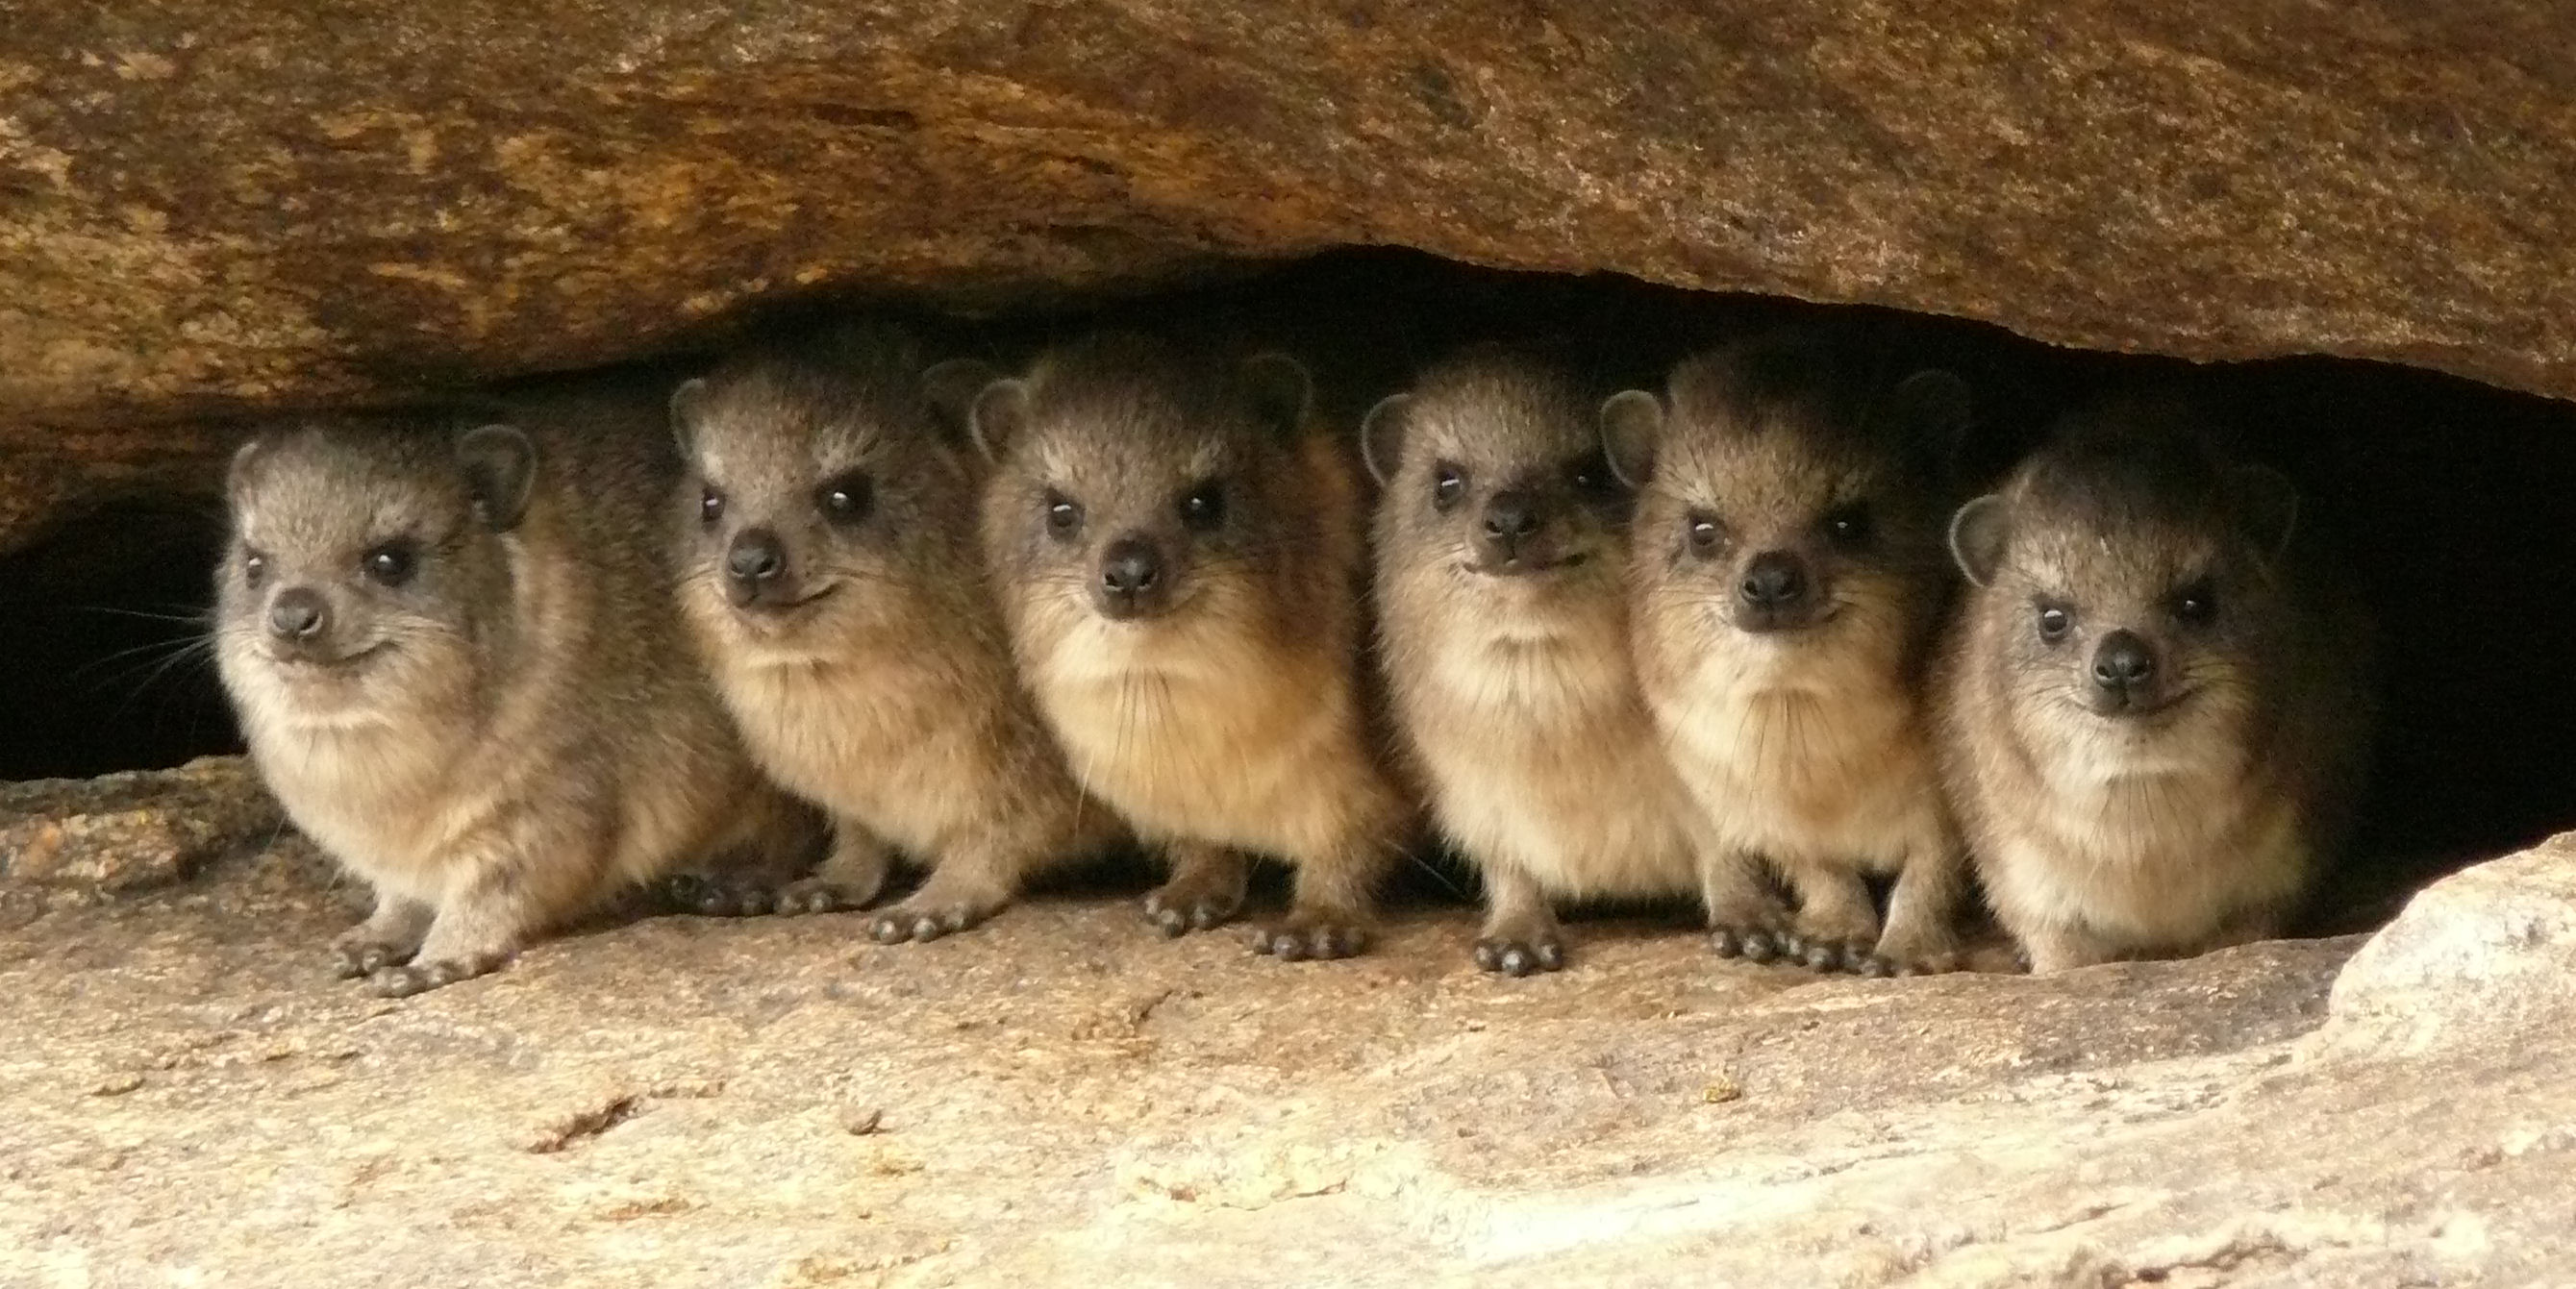 ROCK DASSIE OR HYRAX – Personal Collection by Ta